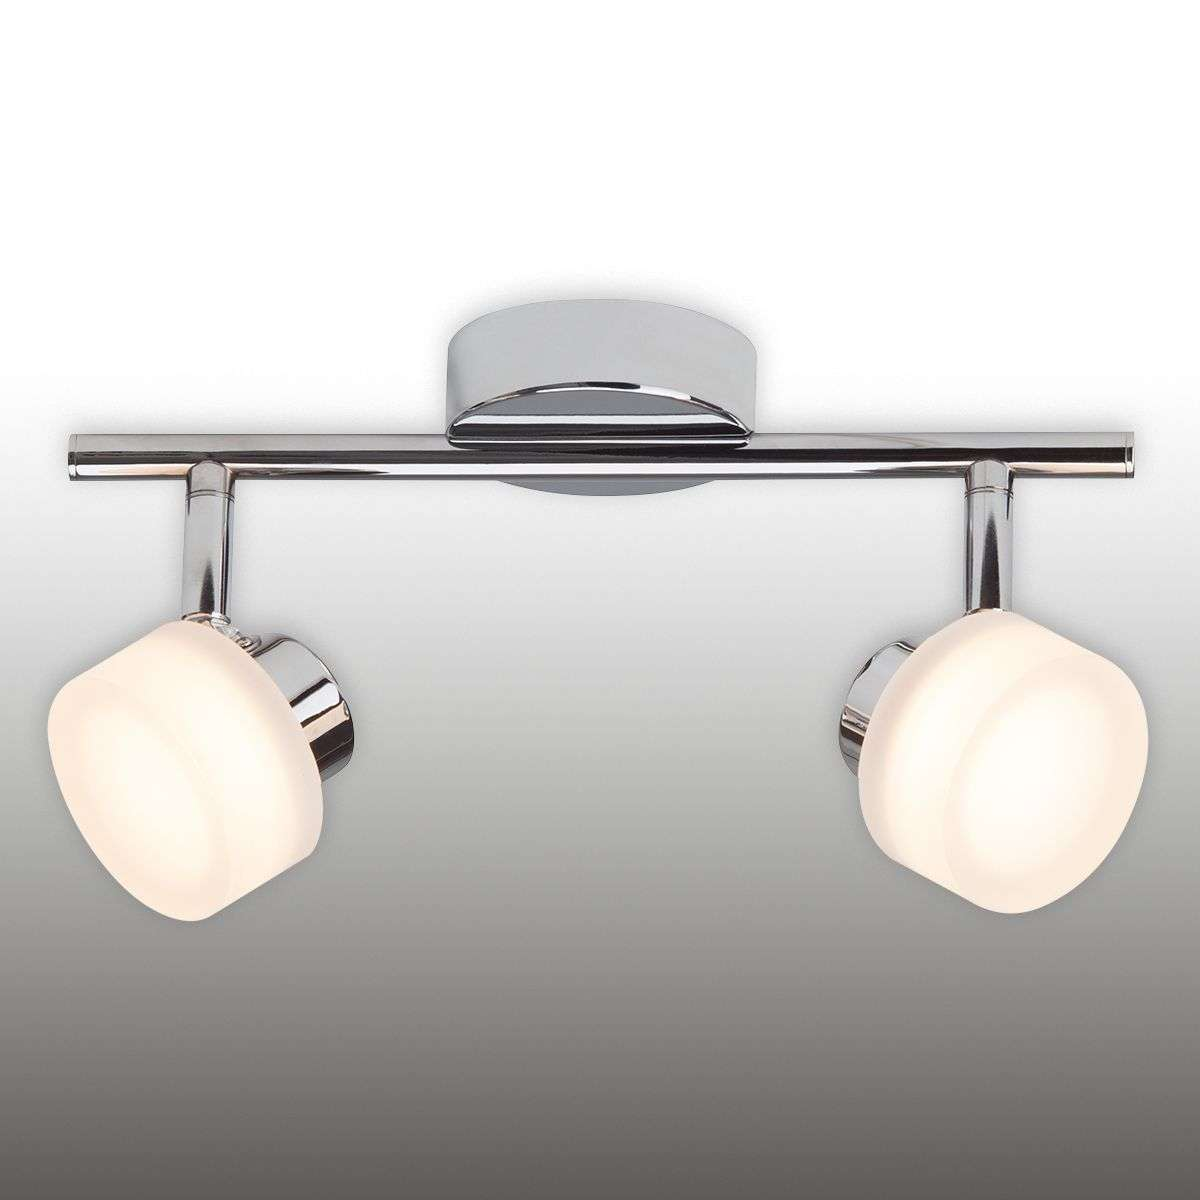 RORY 2-pkt. spot sufitowy LED-1508967-31